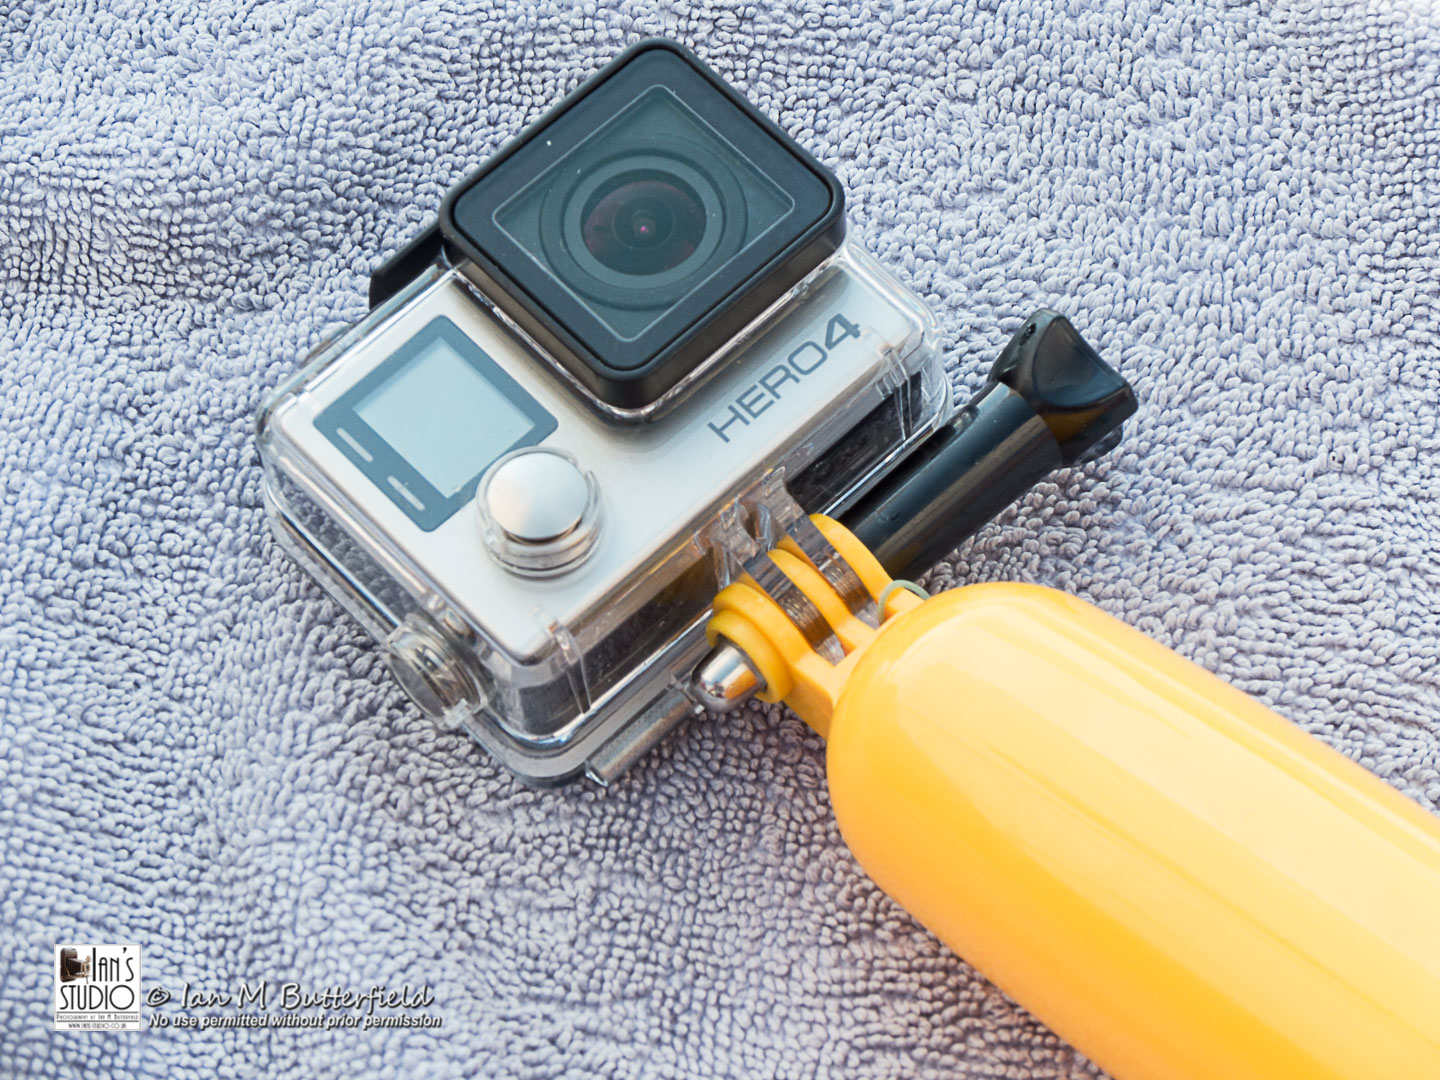 BLOG 28 Aug 2019: Is a GoPro worth buying?